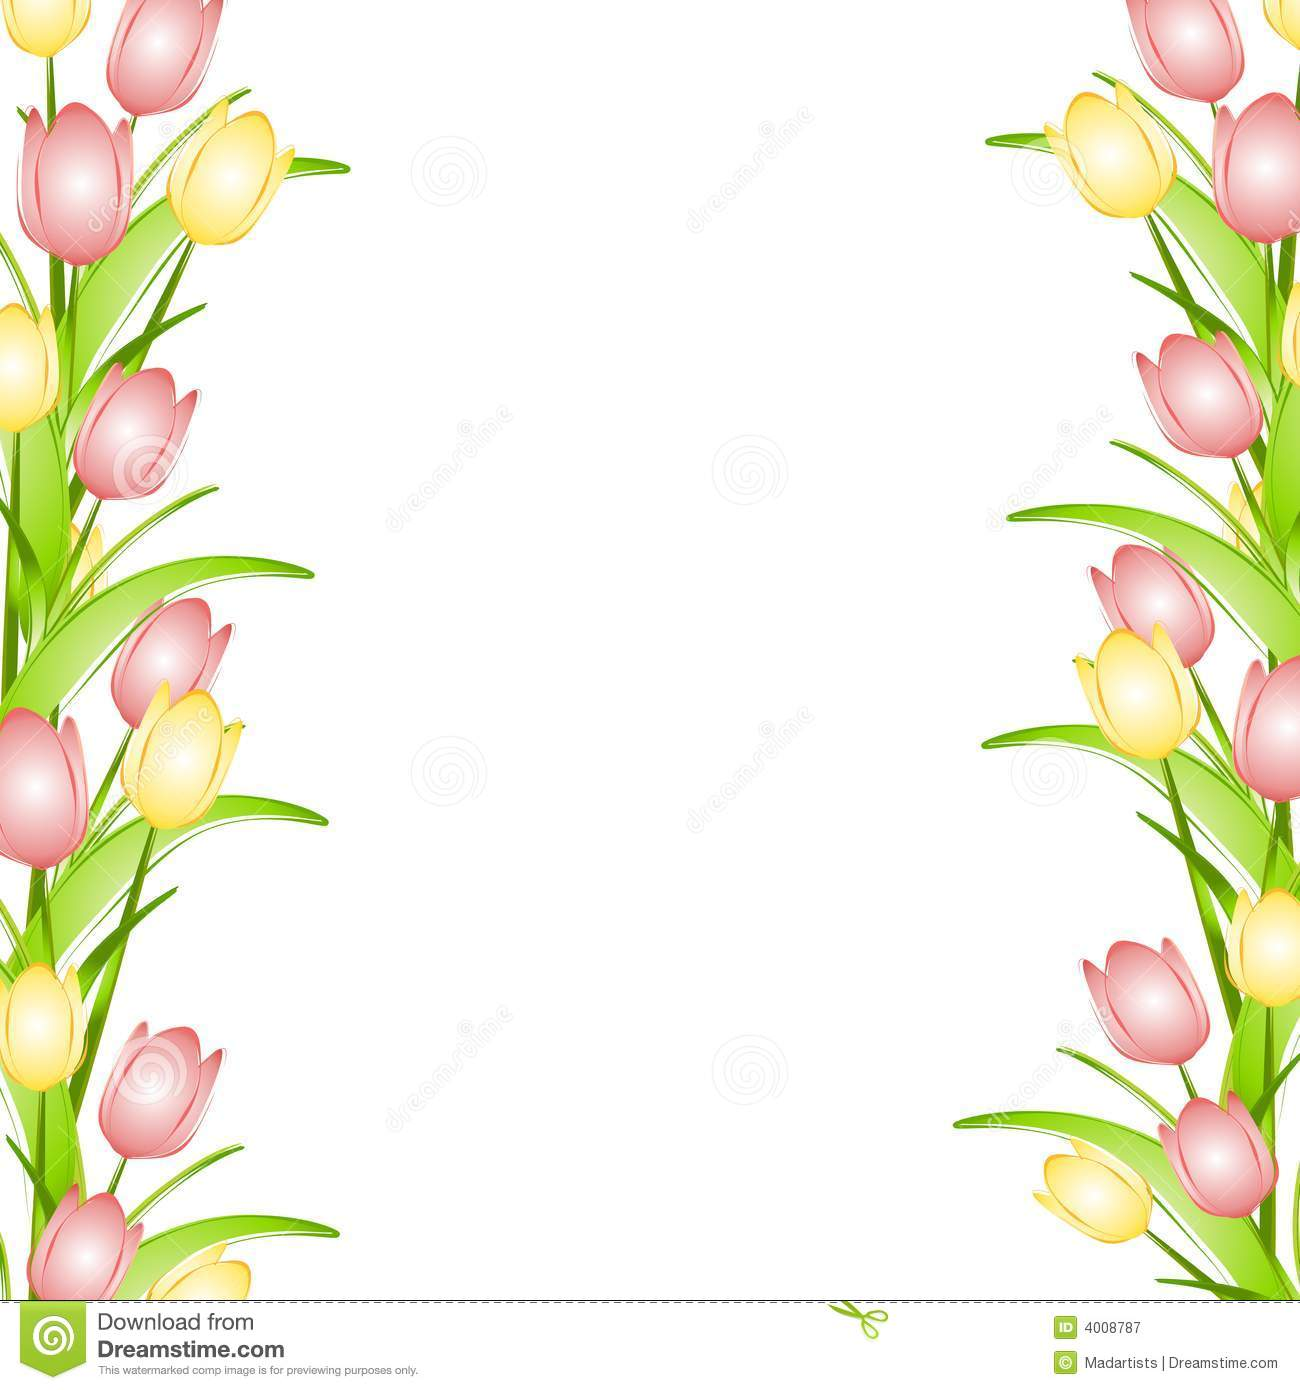 1300x1390 Oval Pink Borders Border Featuring Yellow And Pink Spring Tulips